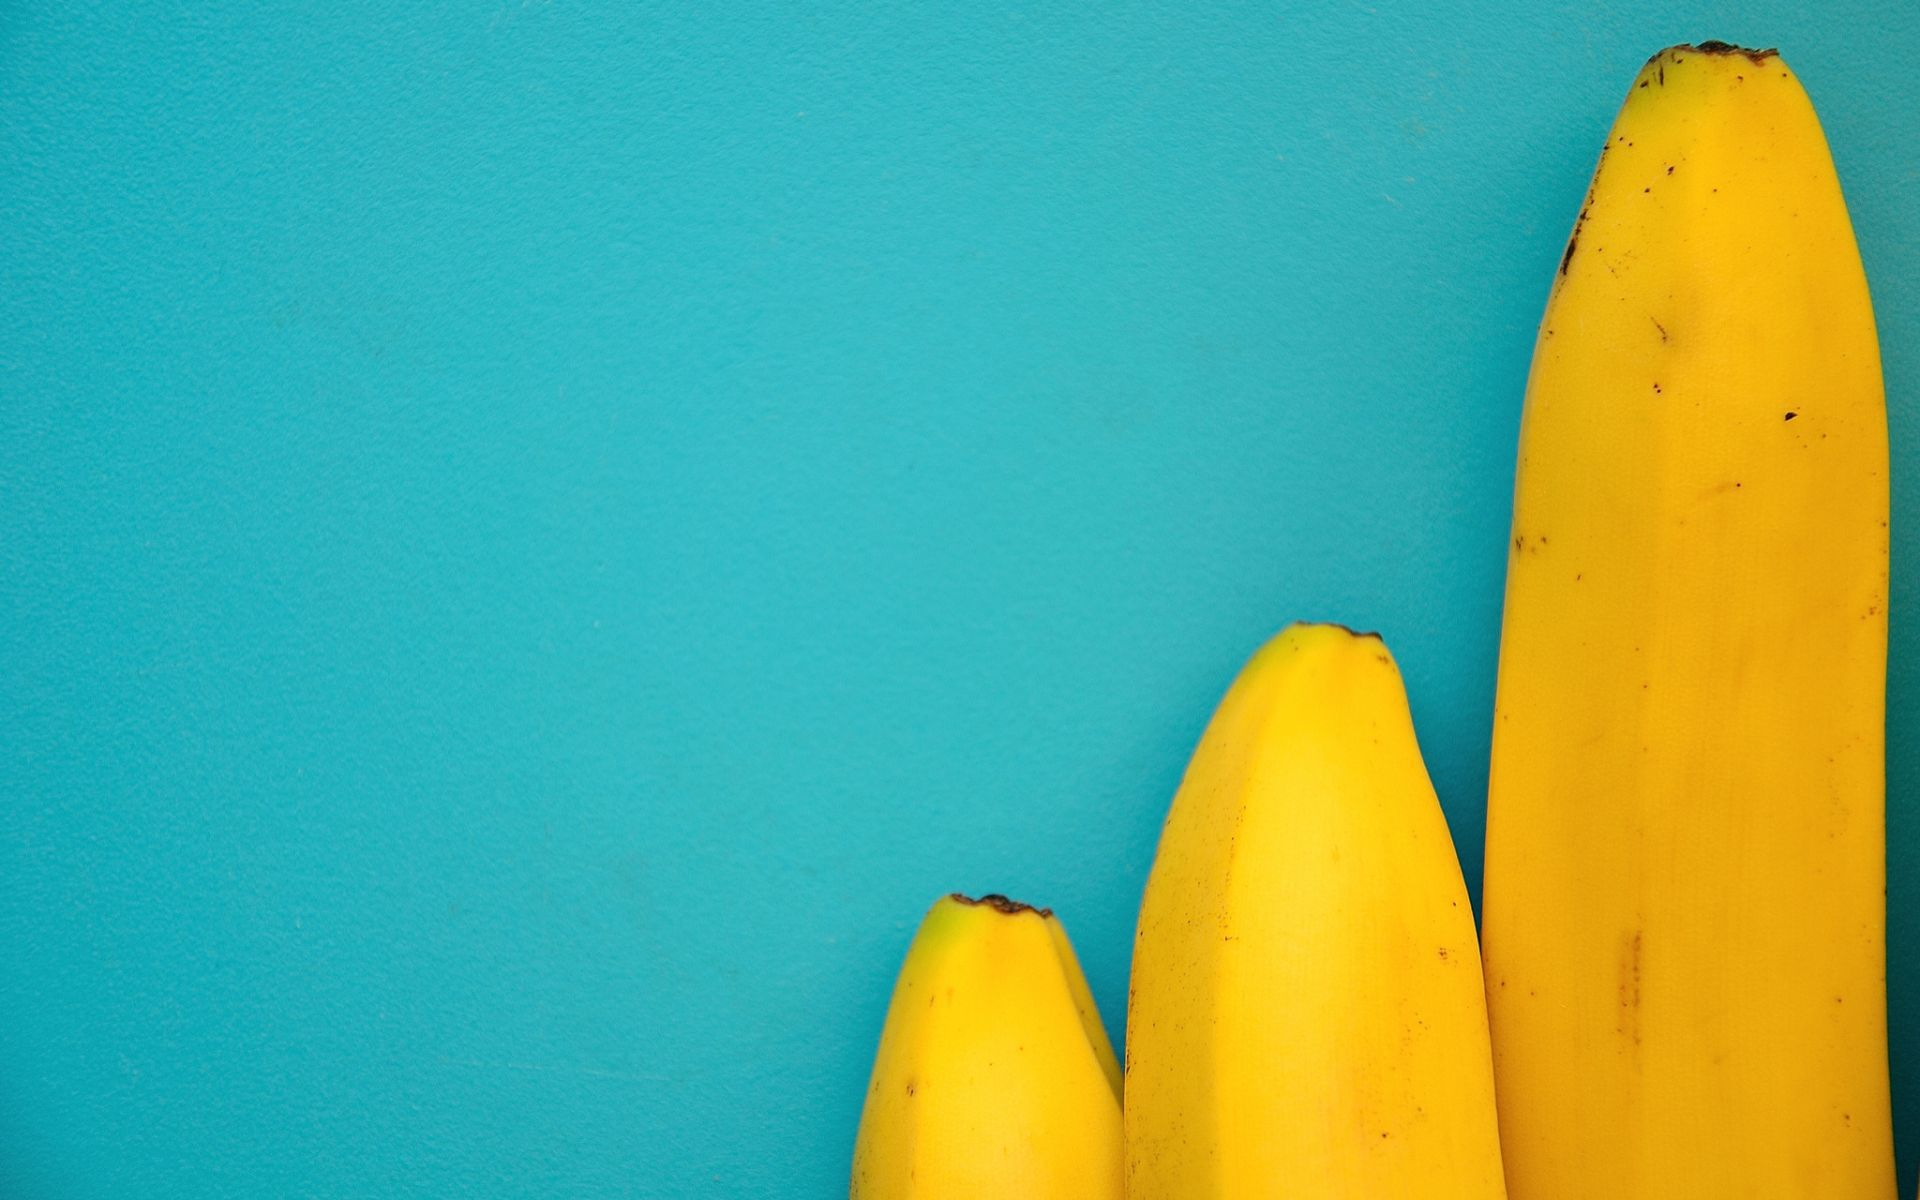 Bananas Computer Wallpaper